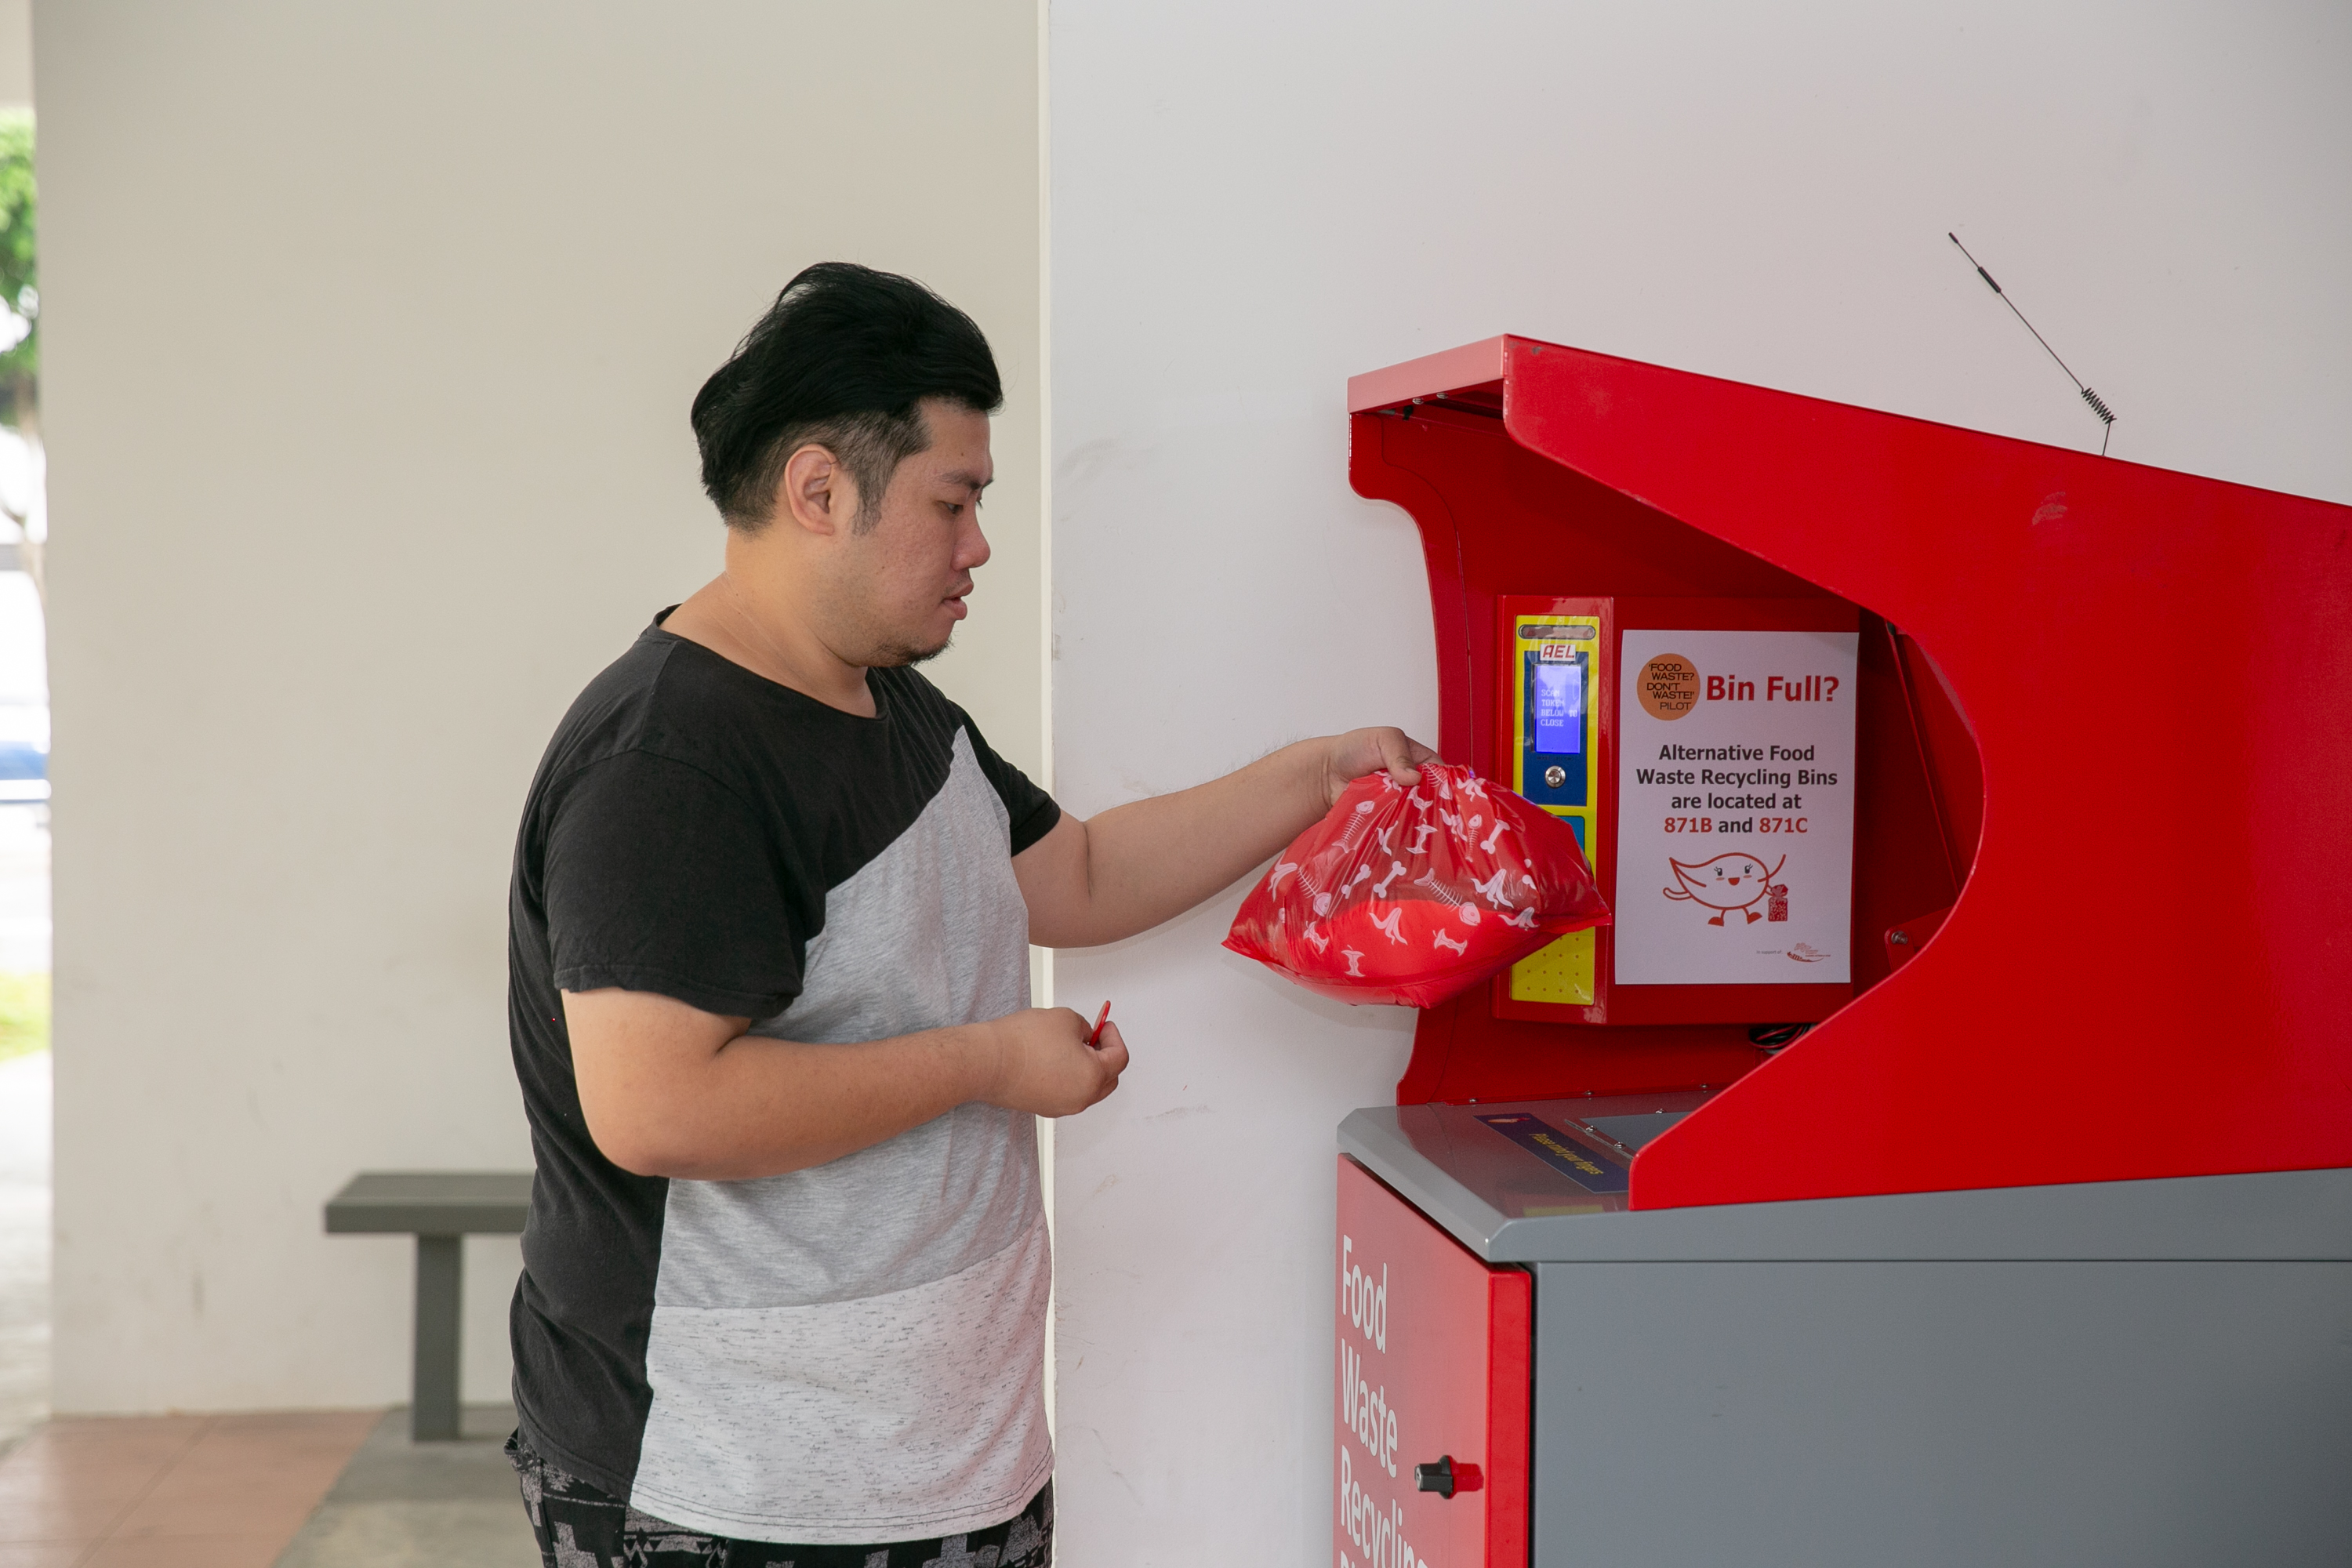 A resident disposes of food waste into a food waste recycling bin